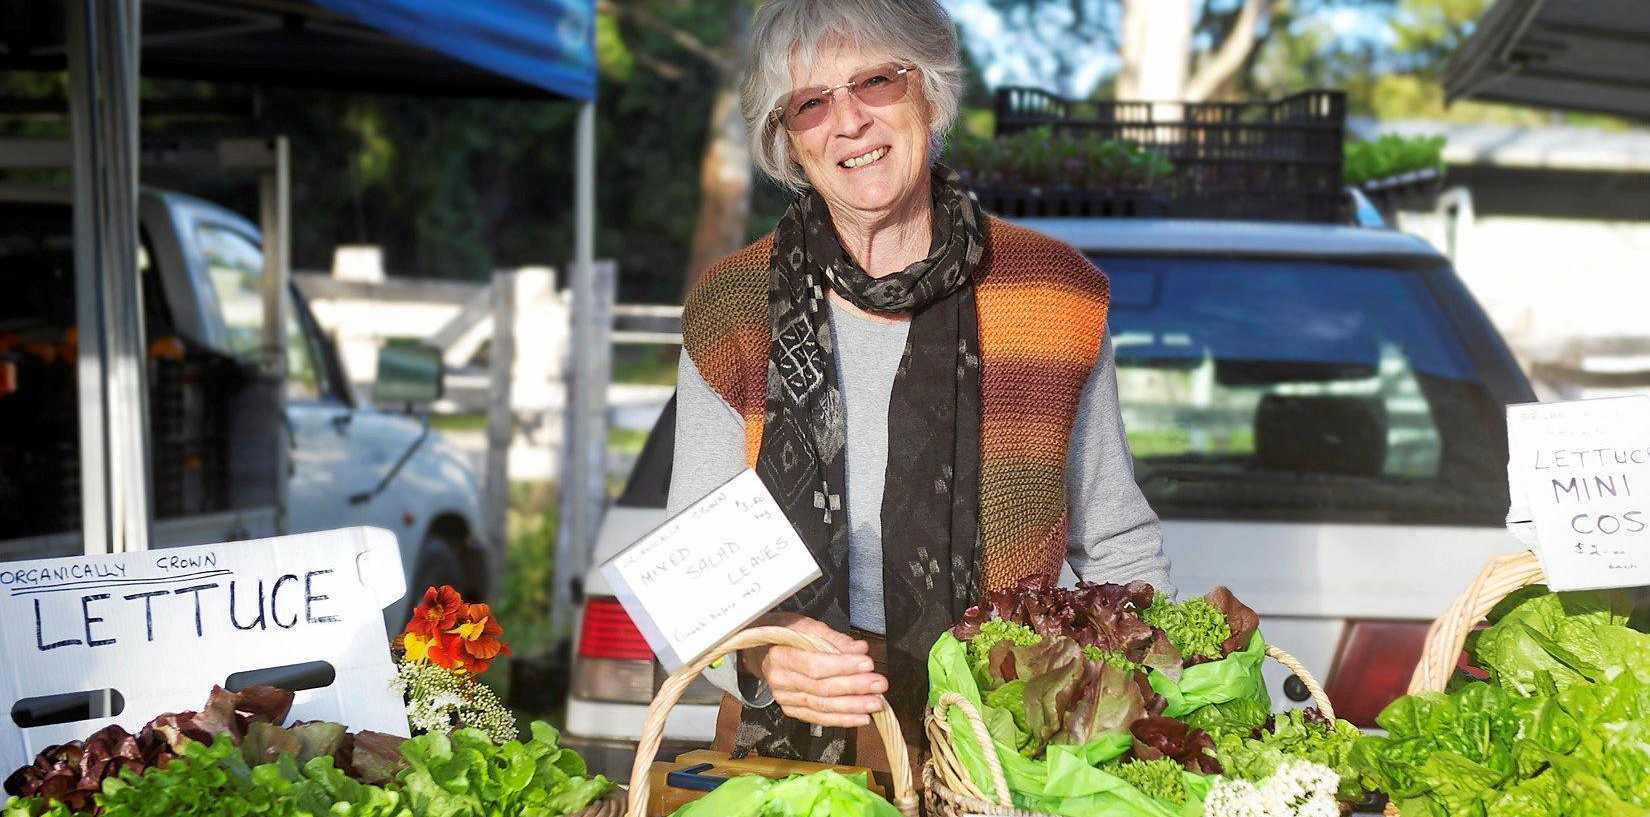 LETTUCE FANCIER: Denise Latham at her stall at the Mullumbimby Farmers' Market.